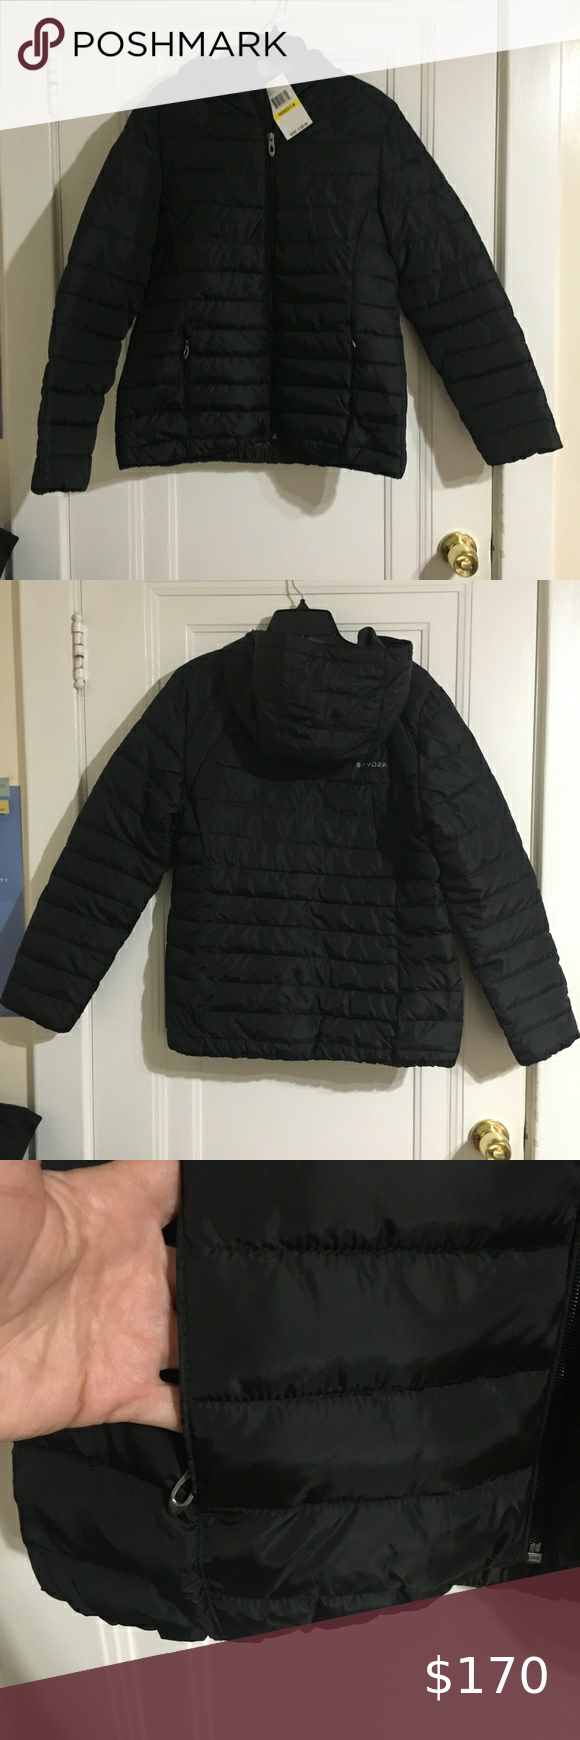 Spyder Black Puff Hooded Bomber Jacket Size Medium Spyder Black Puff Hooded Bomber Jacket Size Medium  Brand new with tags.  Jacket has 2 front zip pockets and inside pocket..  2019 -RR 0131 Spyder Jackets & Coats Puffers